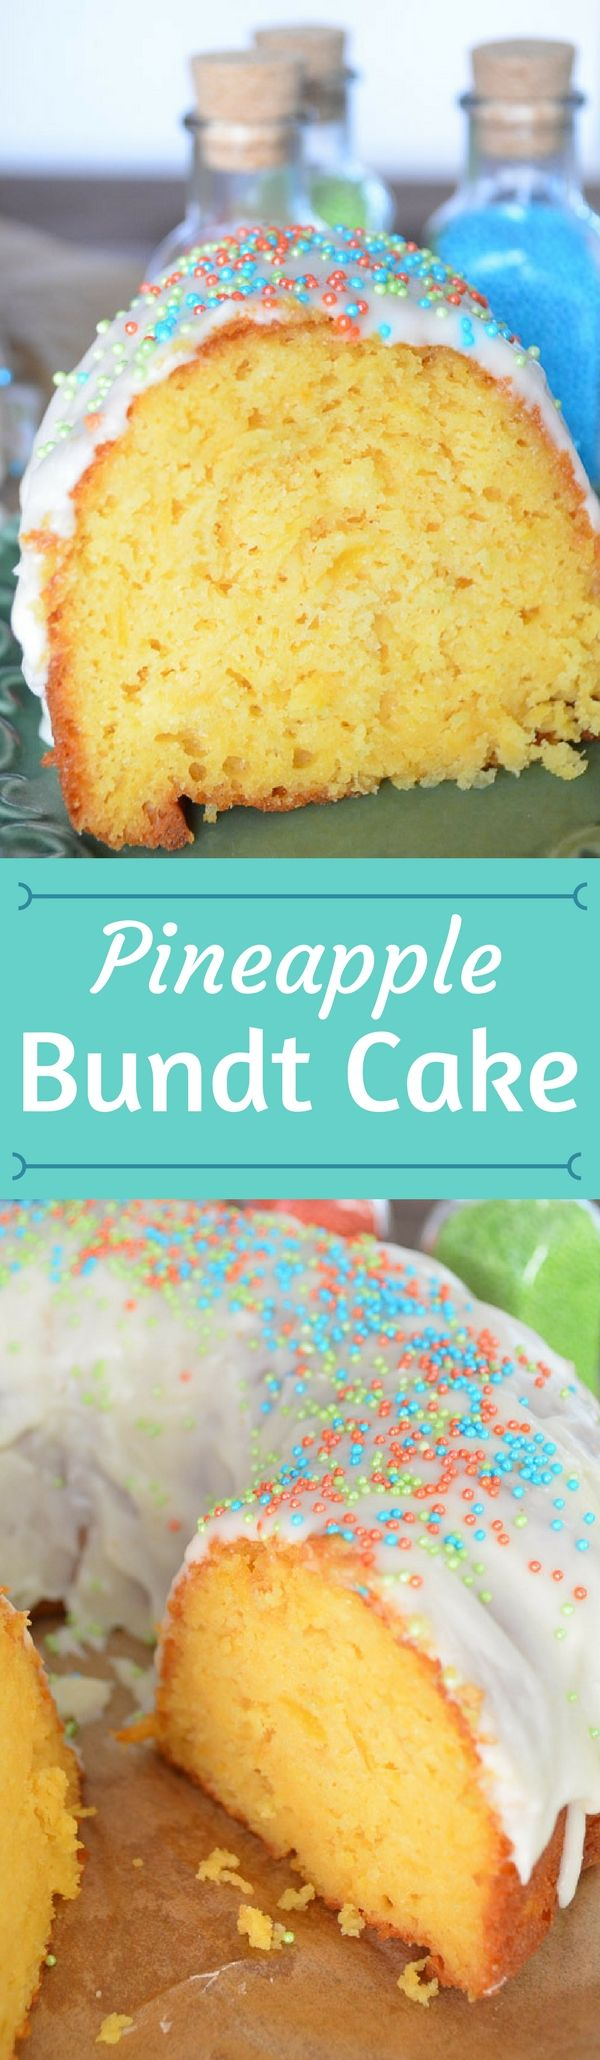 This Pineapple Bundt Cake Recipe uses the juice of a can of crushed pineapple and the crushed pineapple in the batter. It is amazing!